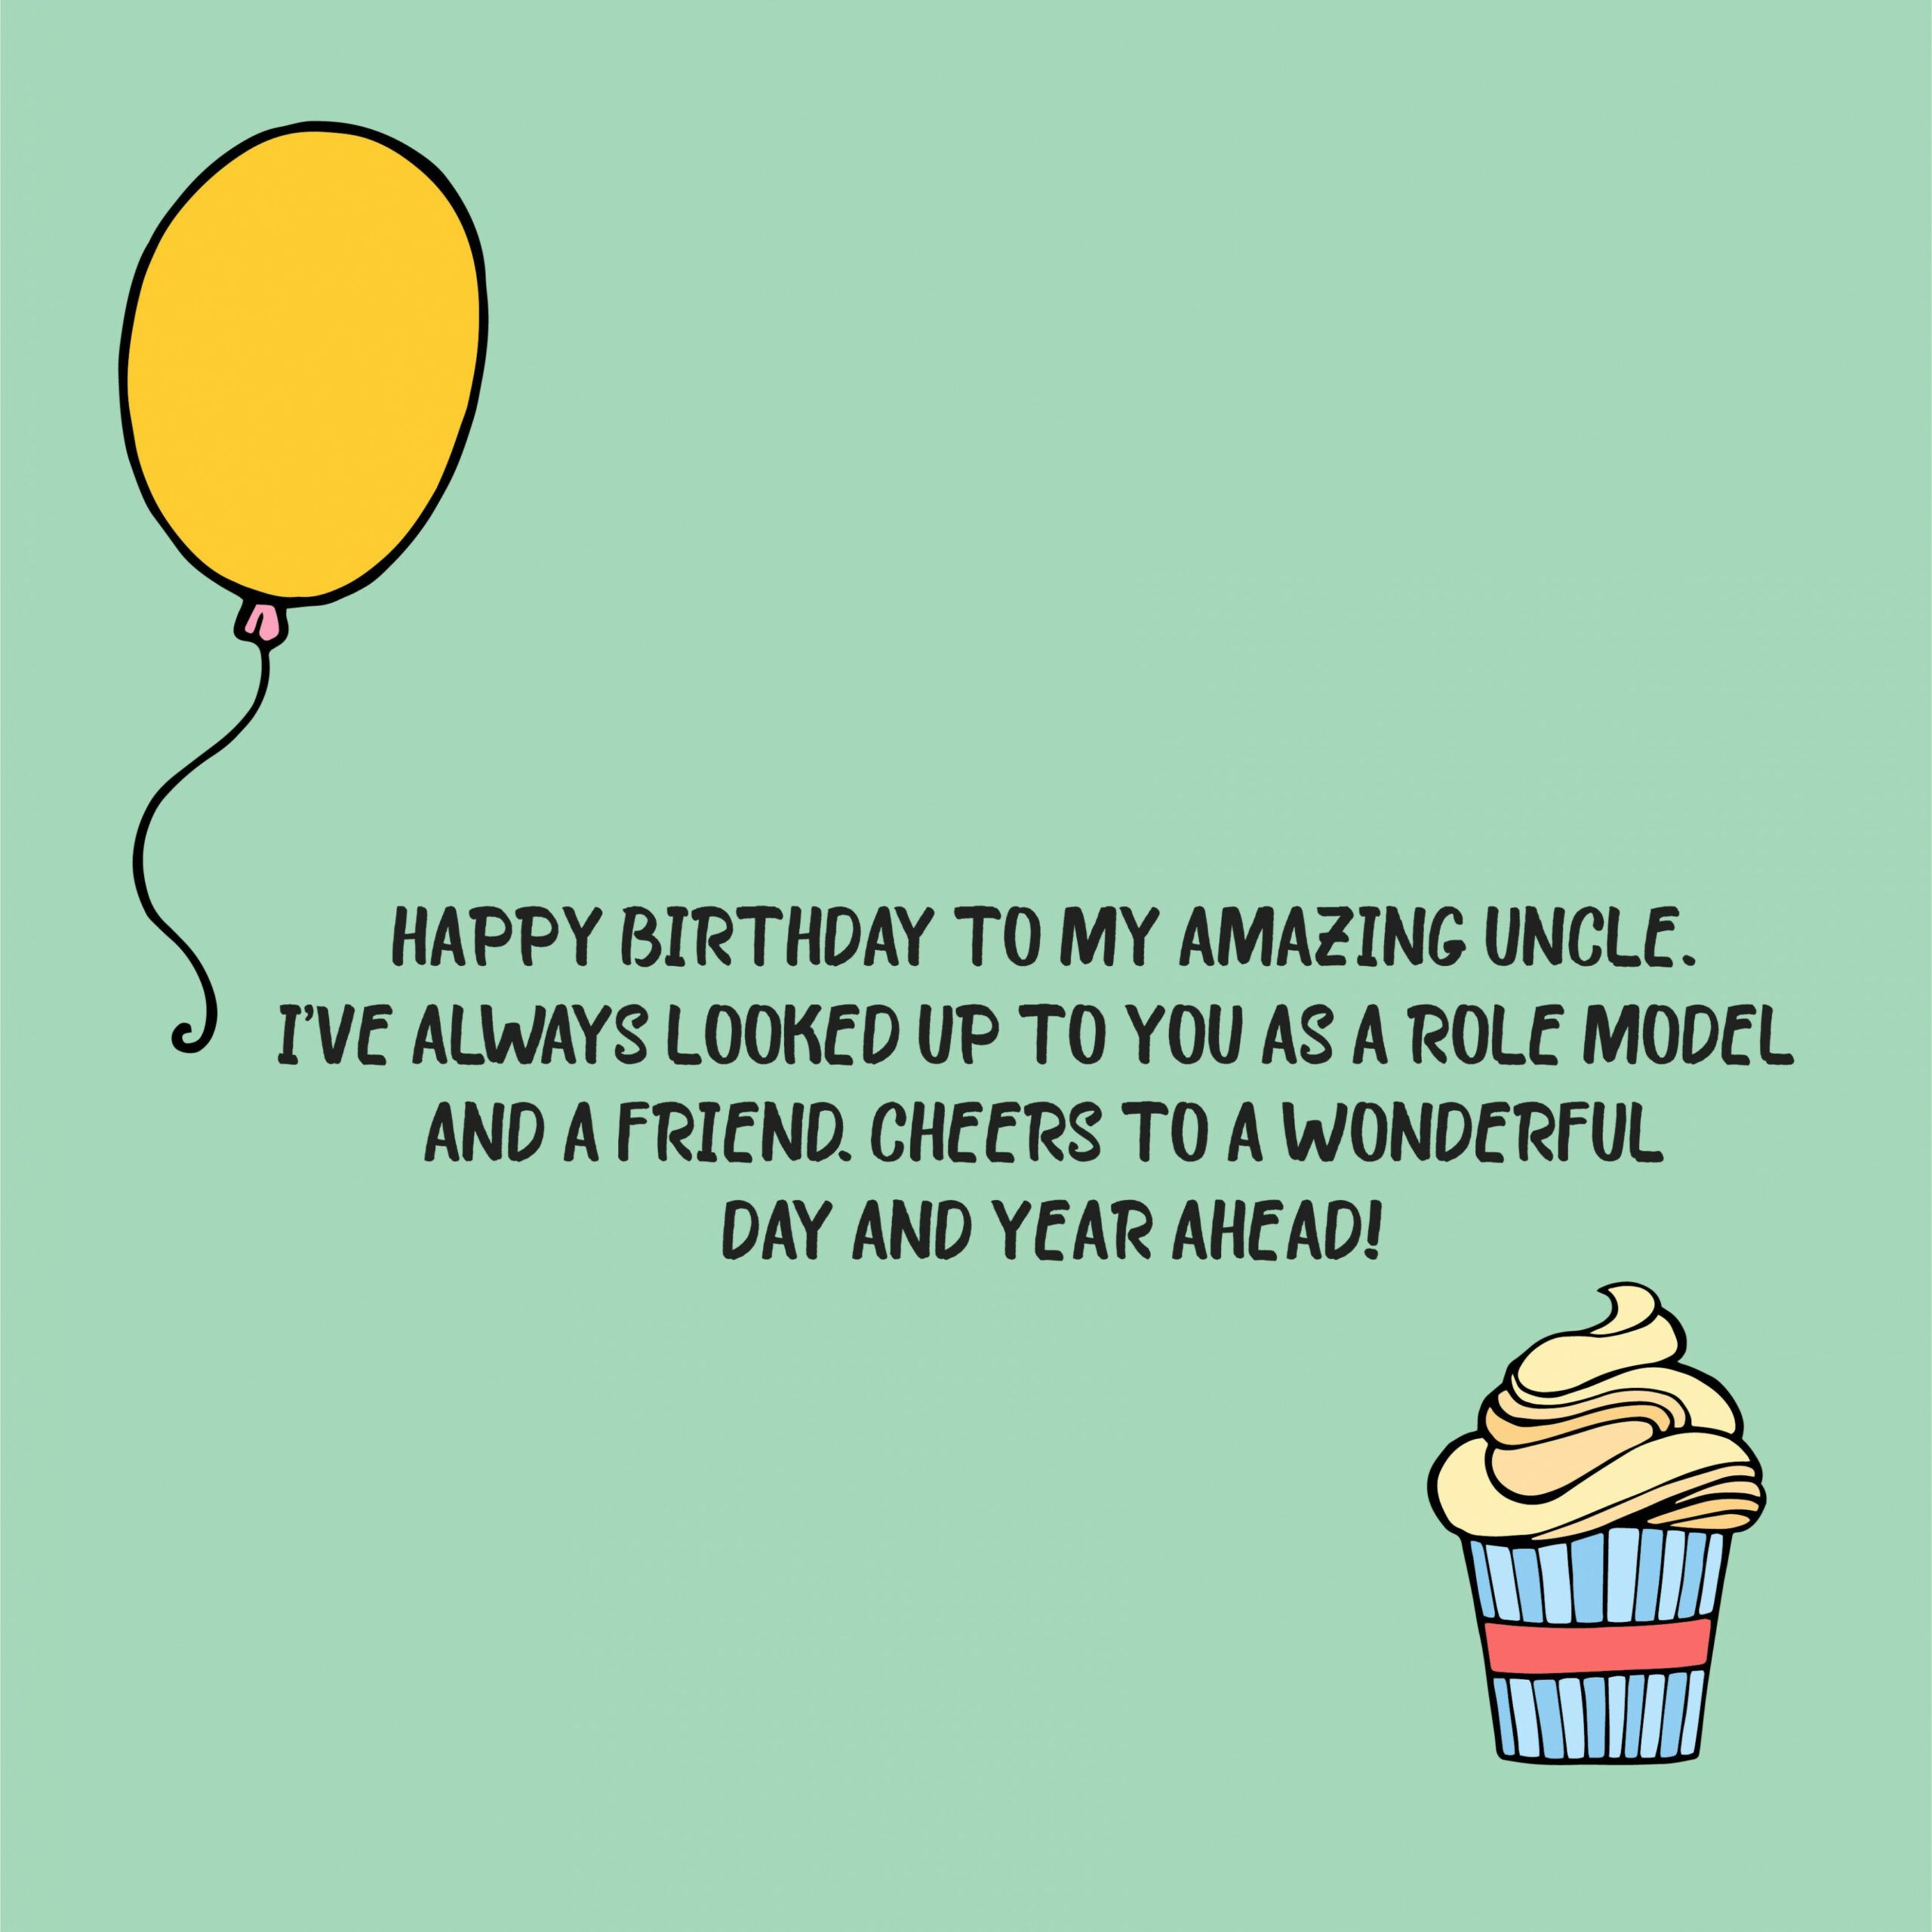 8 Awesome Funny Birthday Wishes For Uncle In 2021 Birthday Wishes For Uncle Birthday Wishes Funny Best Birthday Wishes